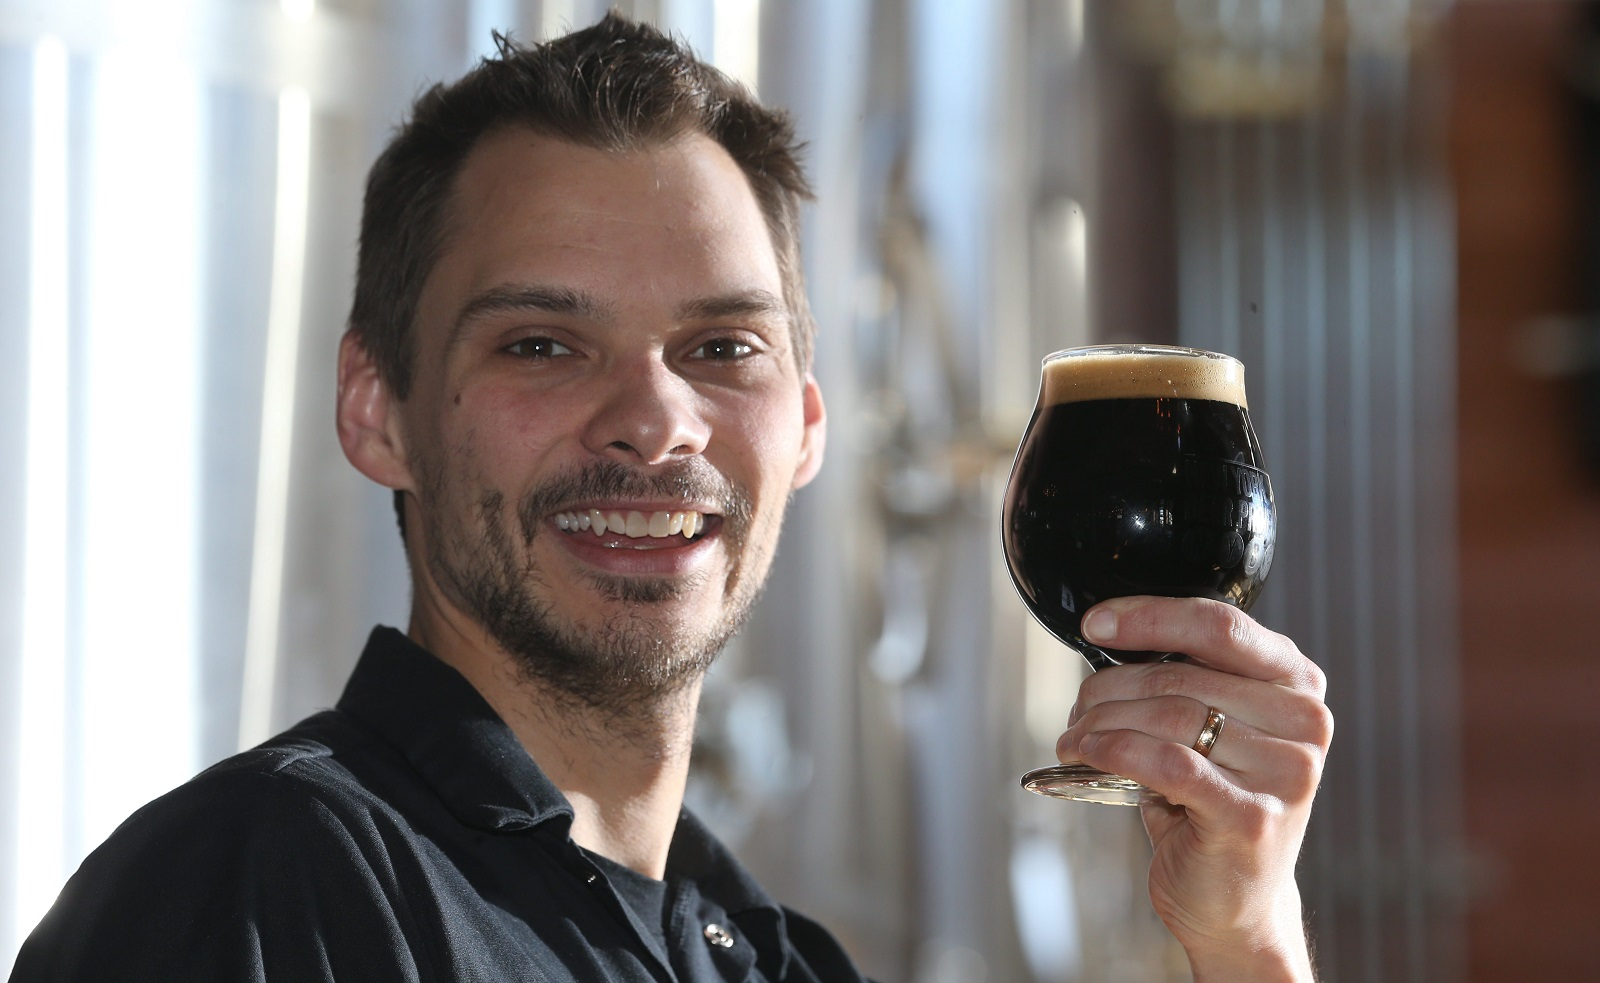 beer project New york beer project, lockport: see 191 unbiased reviews of new york beer project, rated 4 of 5 on tripadvisor and ranked #9 of 128 restaurants in lockport.